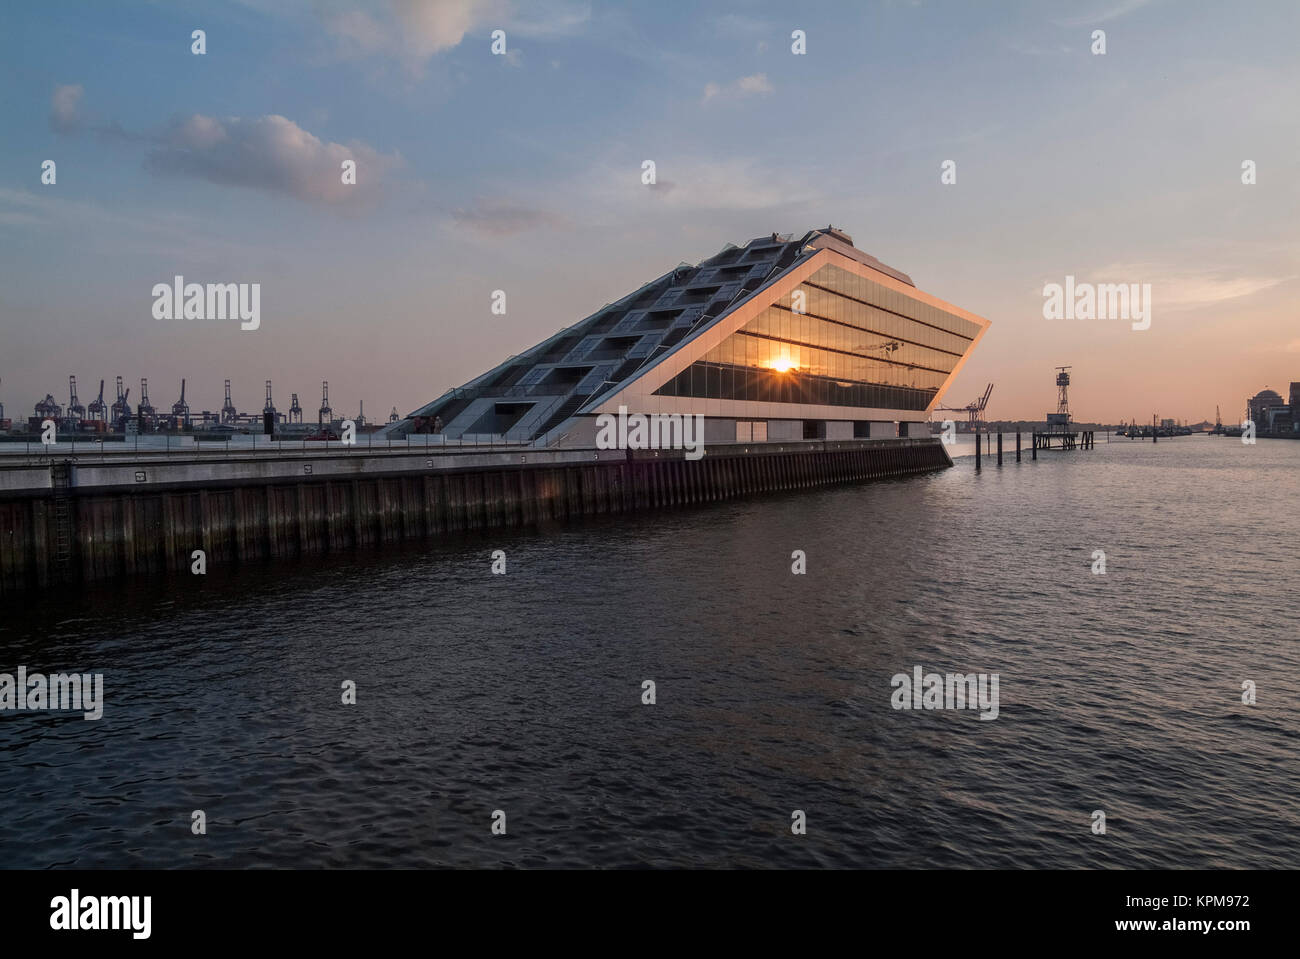 Hamburg, one of the most beautiful and most popular tourist destinations in the world. Docklands, office building - Stock Image